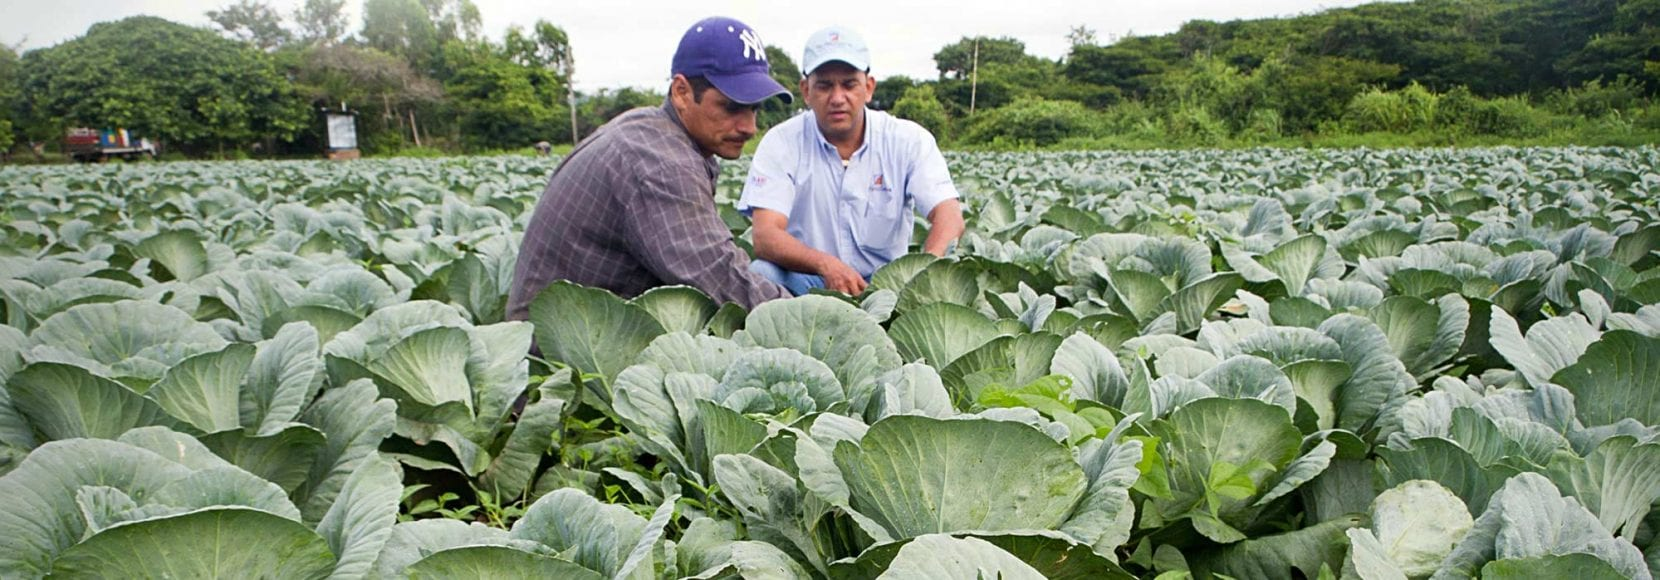 Two farmers inspecting their crops in Nicaragua